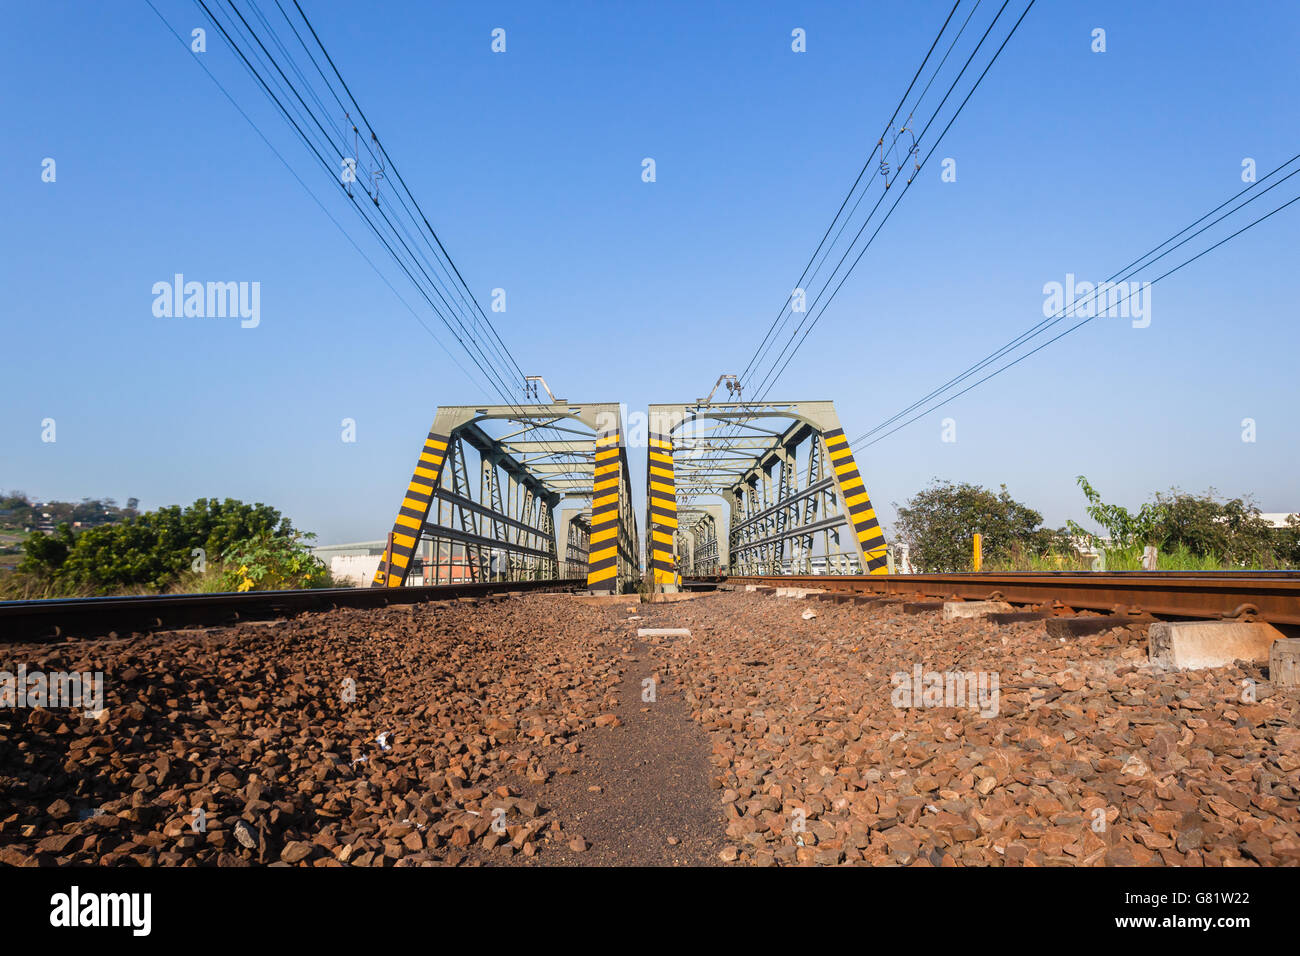 Railway train tracks steel bridge structure at river crossing closeup photo of infrastructure. Stock Photo